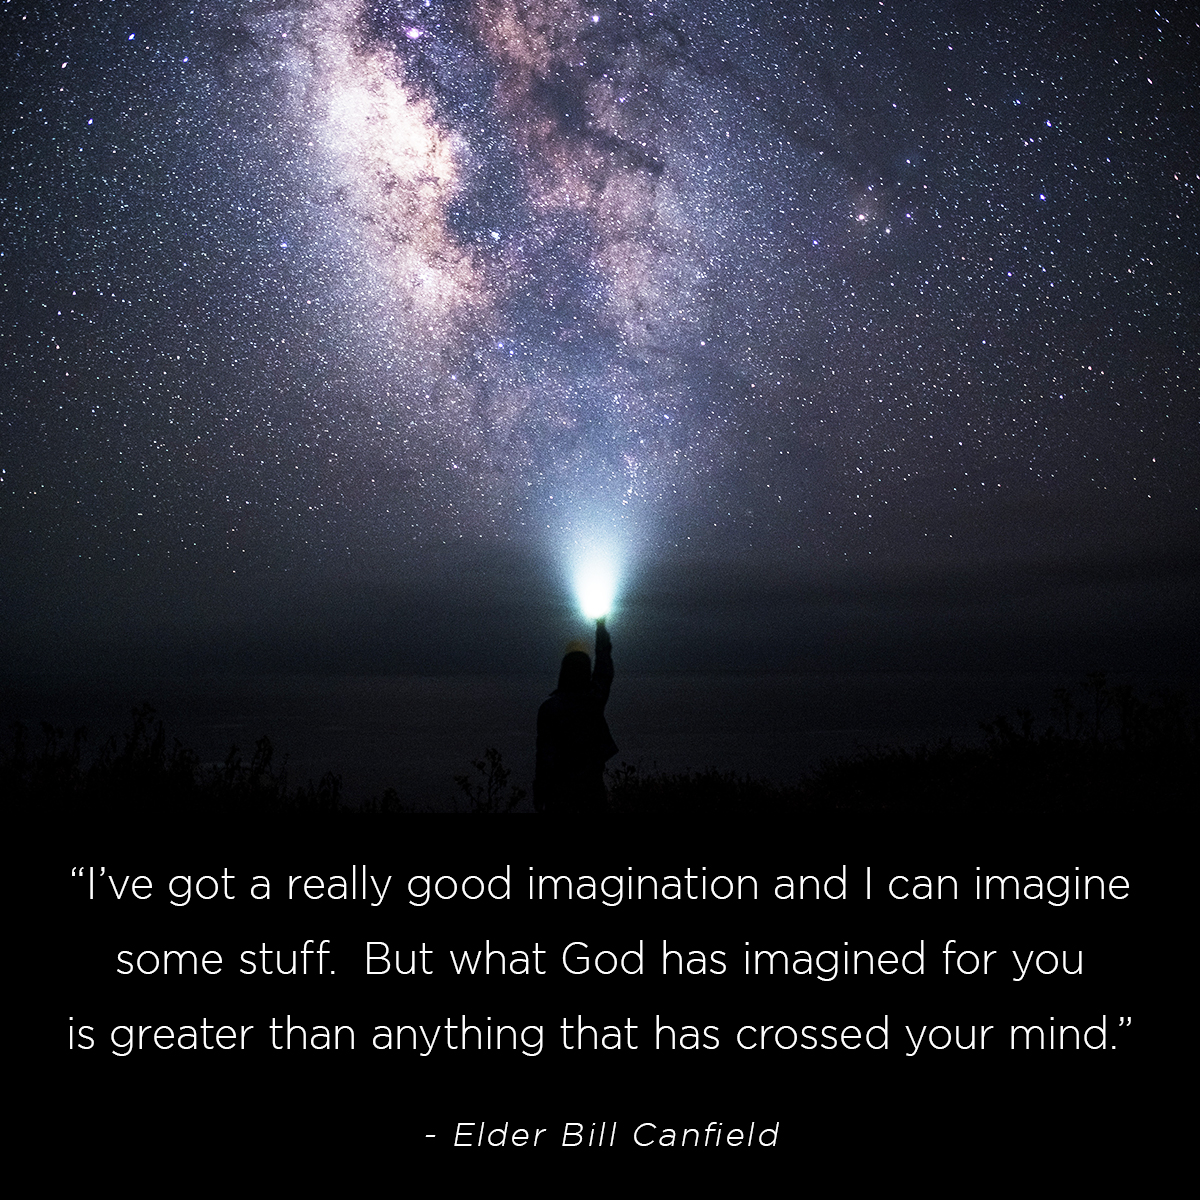 """I've got a really good imagination and I can imagine some stuff.  But what God has imagined for you is greater than anything that has crossed your mind."" – Elder Bill Canfield"